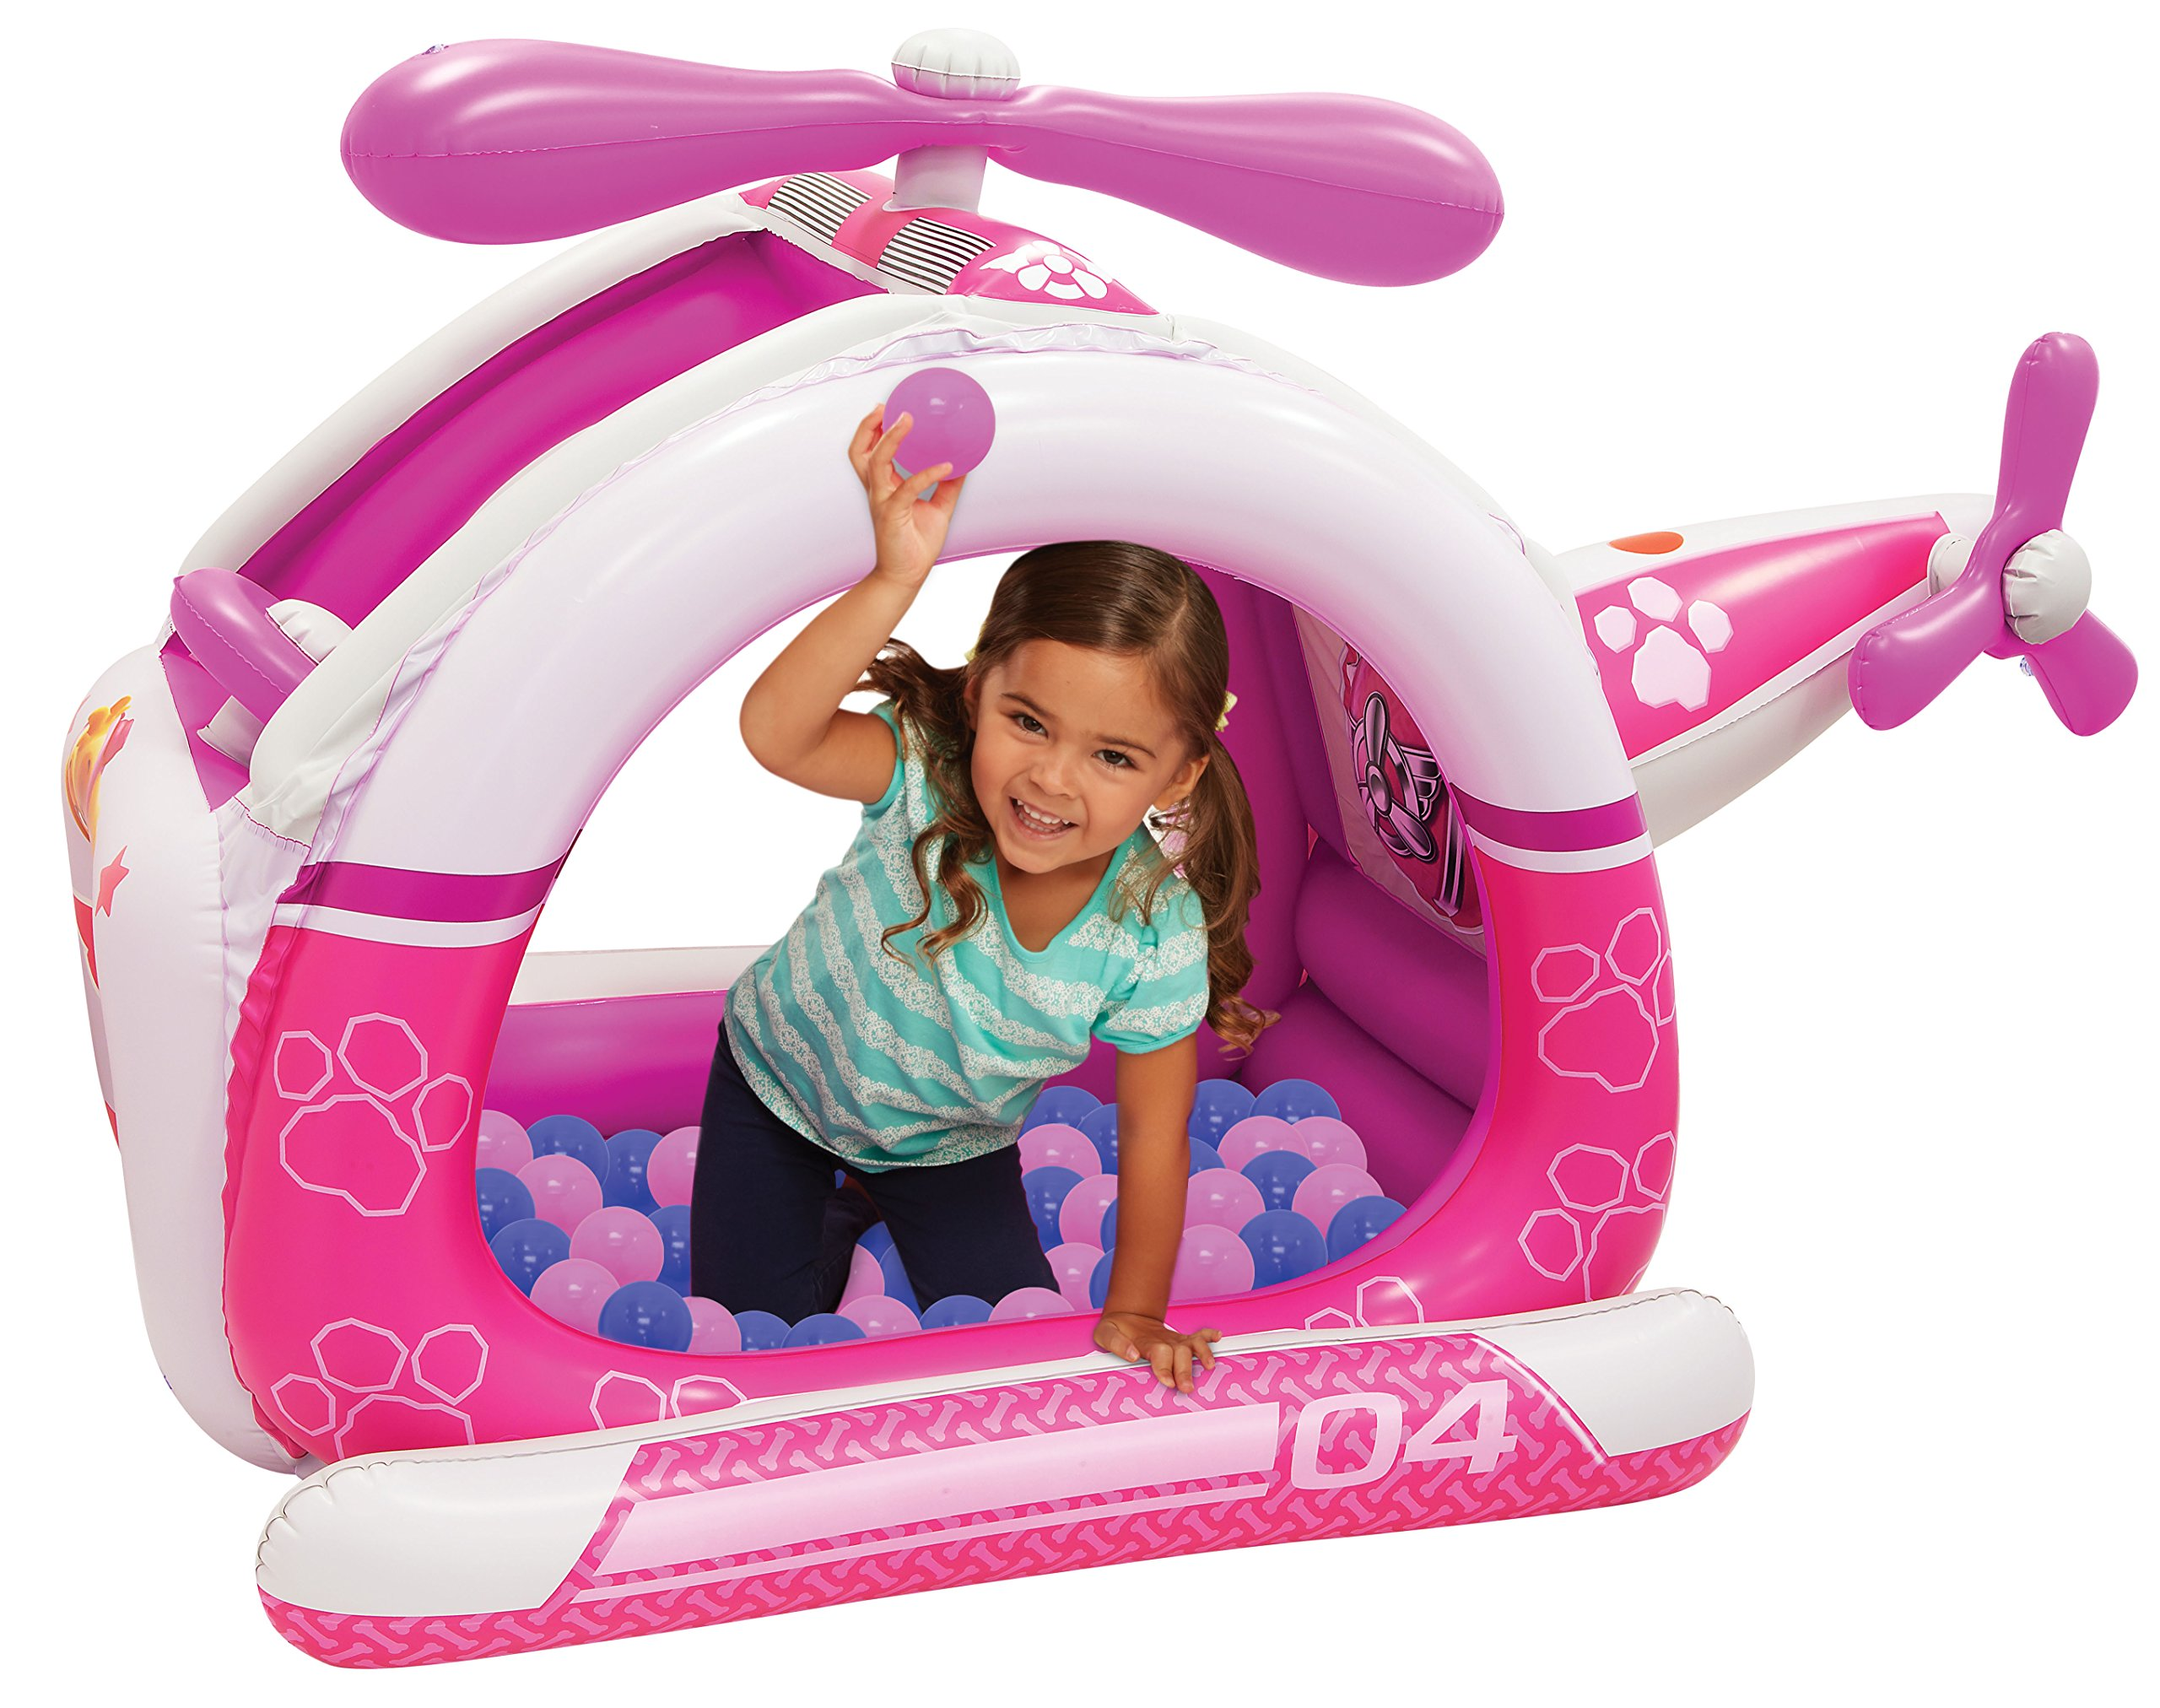 Paw Patrol Skye Helicopter Ball Pit, 1 Inflatable & 50 Sof-Flex Balls, Pink/Purple, 43''W x 43''D x 38''H